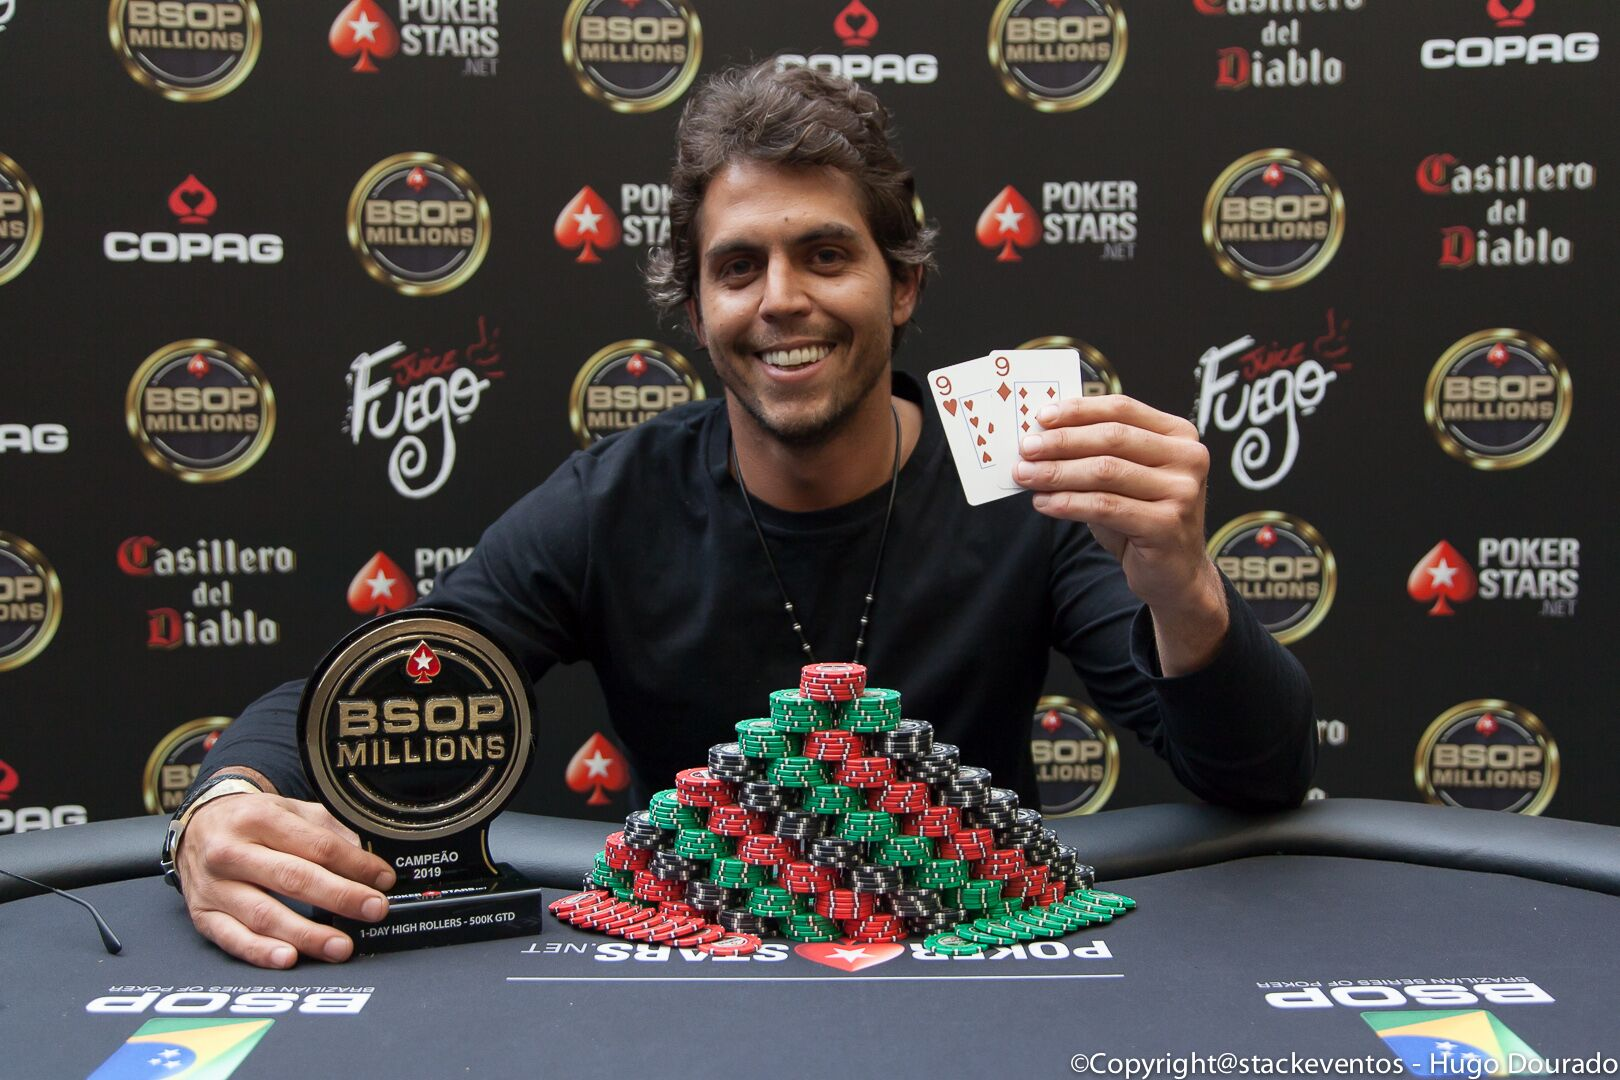 Thiago Signorelli campeão do 1-Day High Roller do BSOP Millions